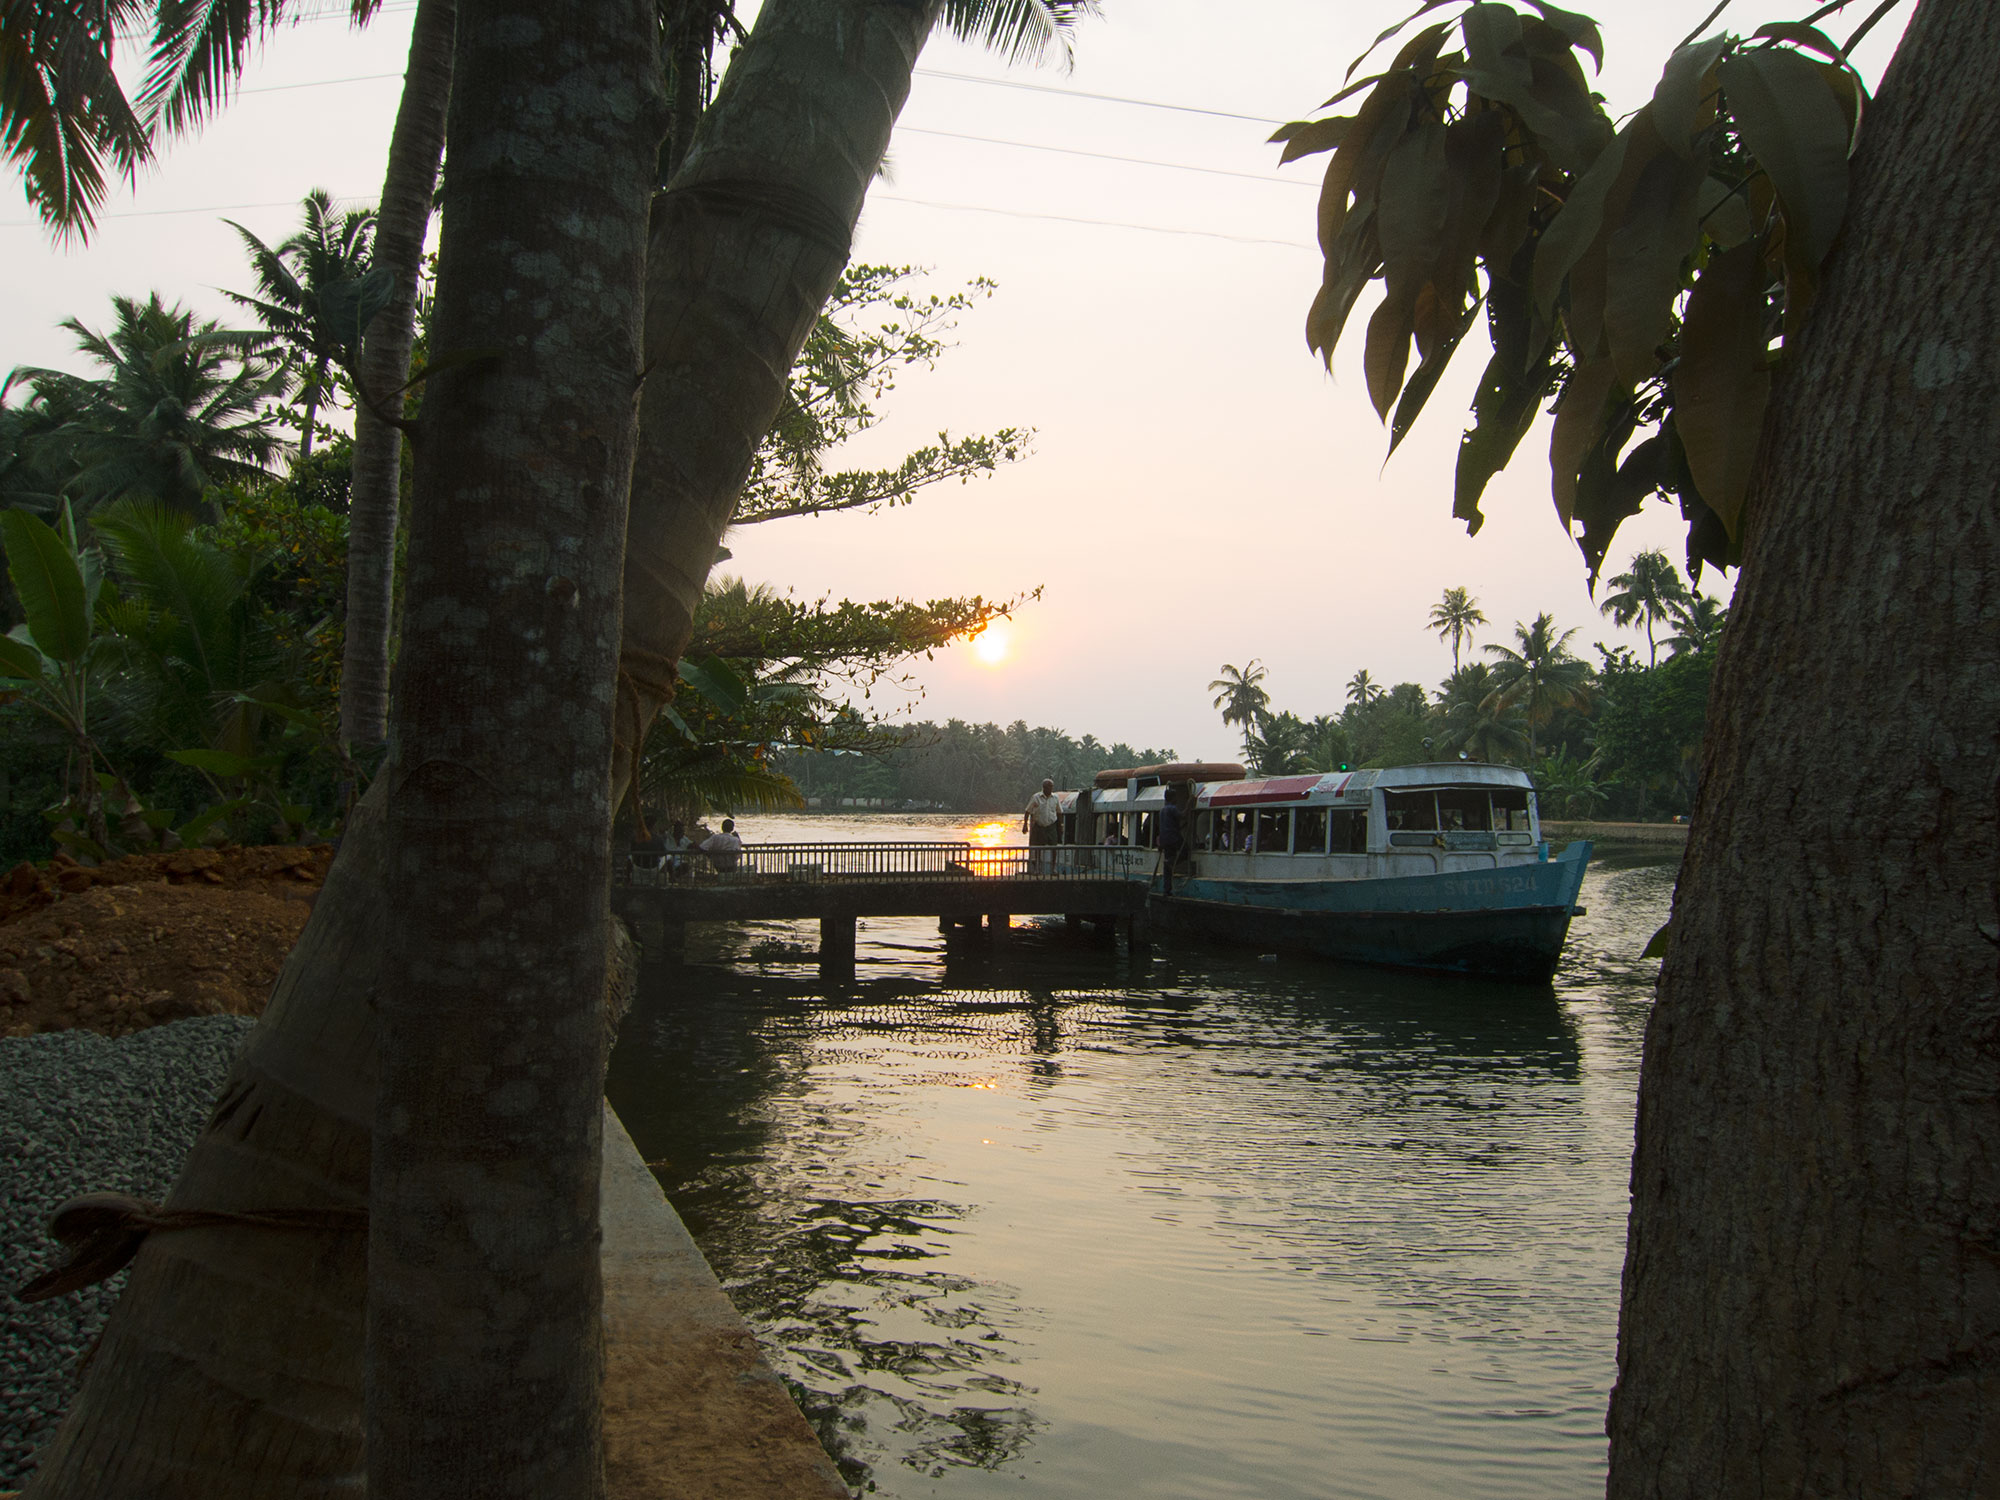 The neighboring dock to our boat.